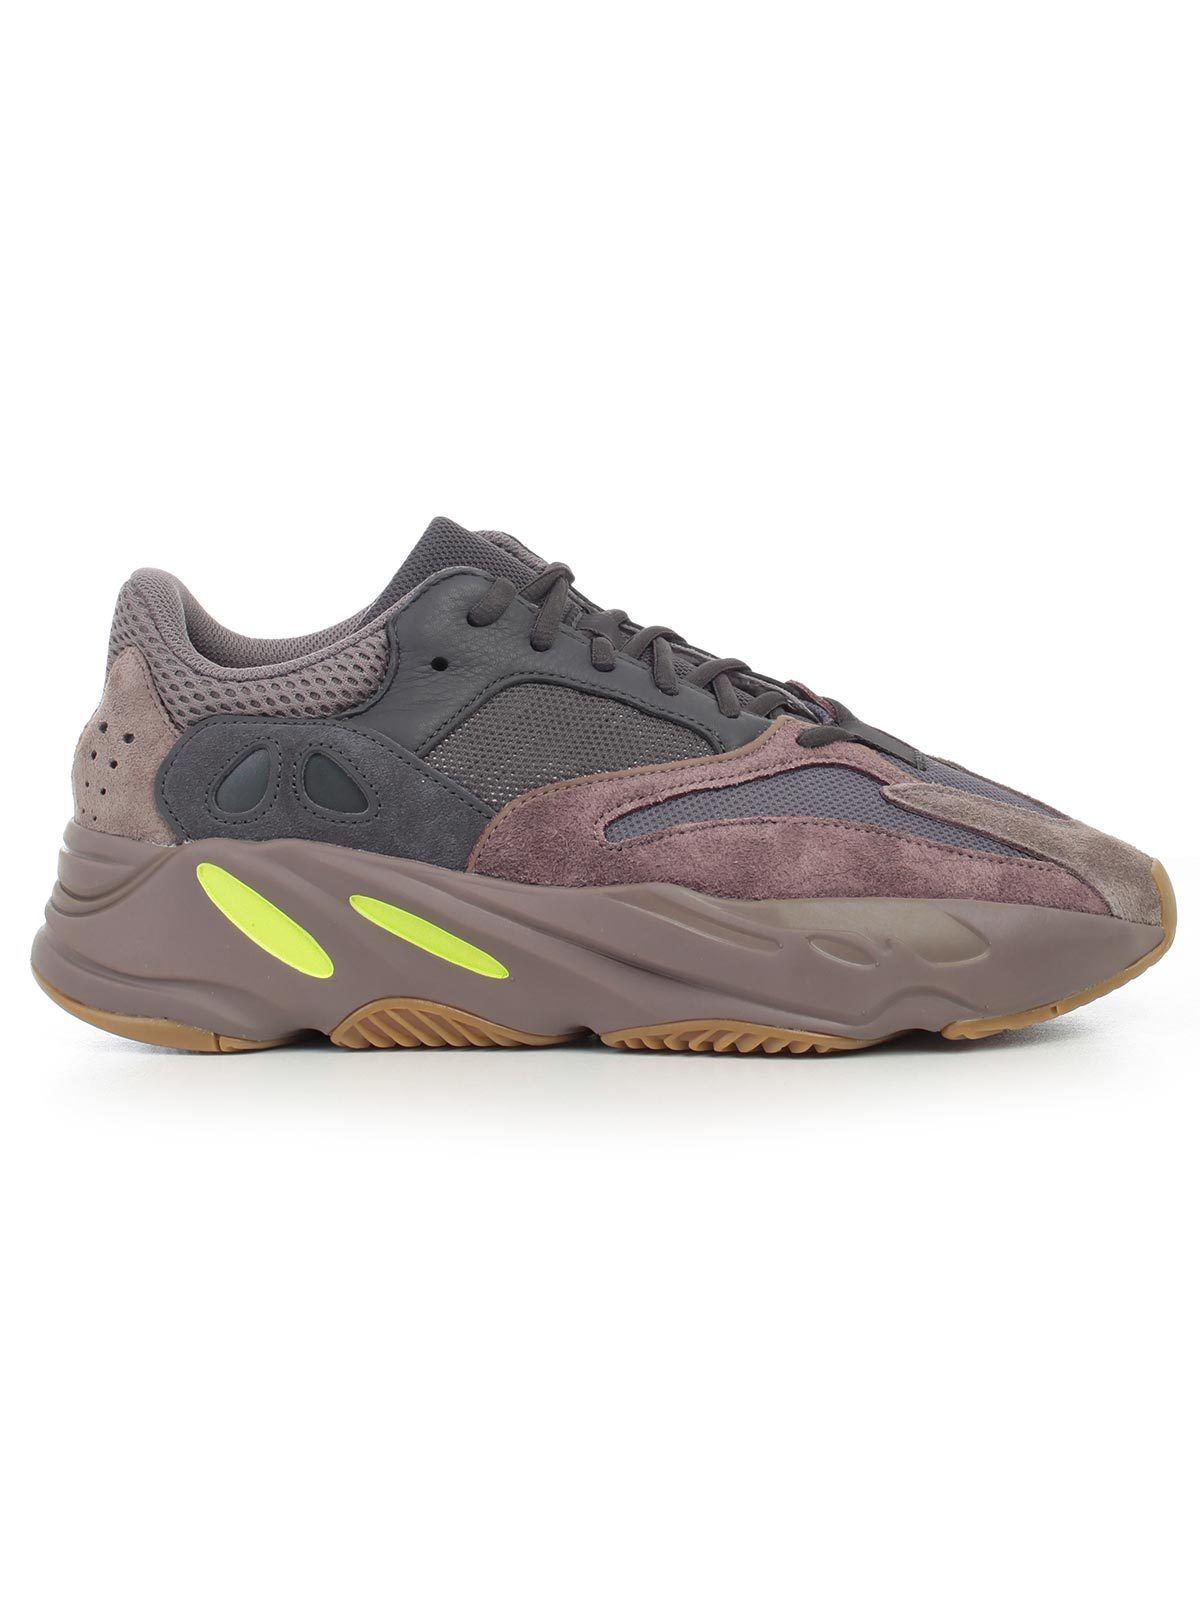 YEEZY ADIDAS X YEEZY BOOST 700 MAUVE PANEL SNEAKERS.  yeezy  shoes ... 0237b521d2eee